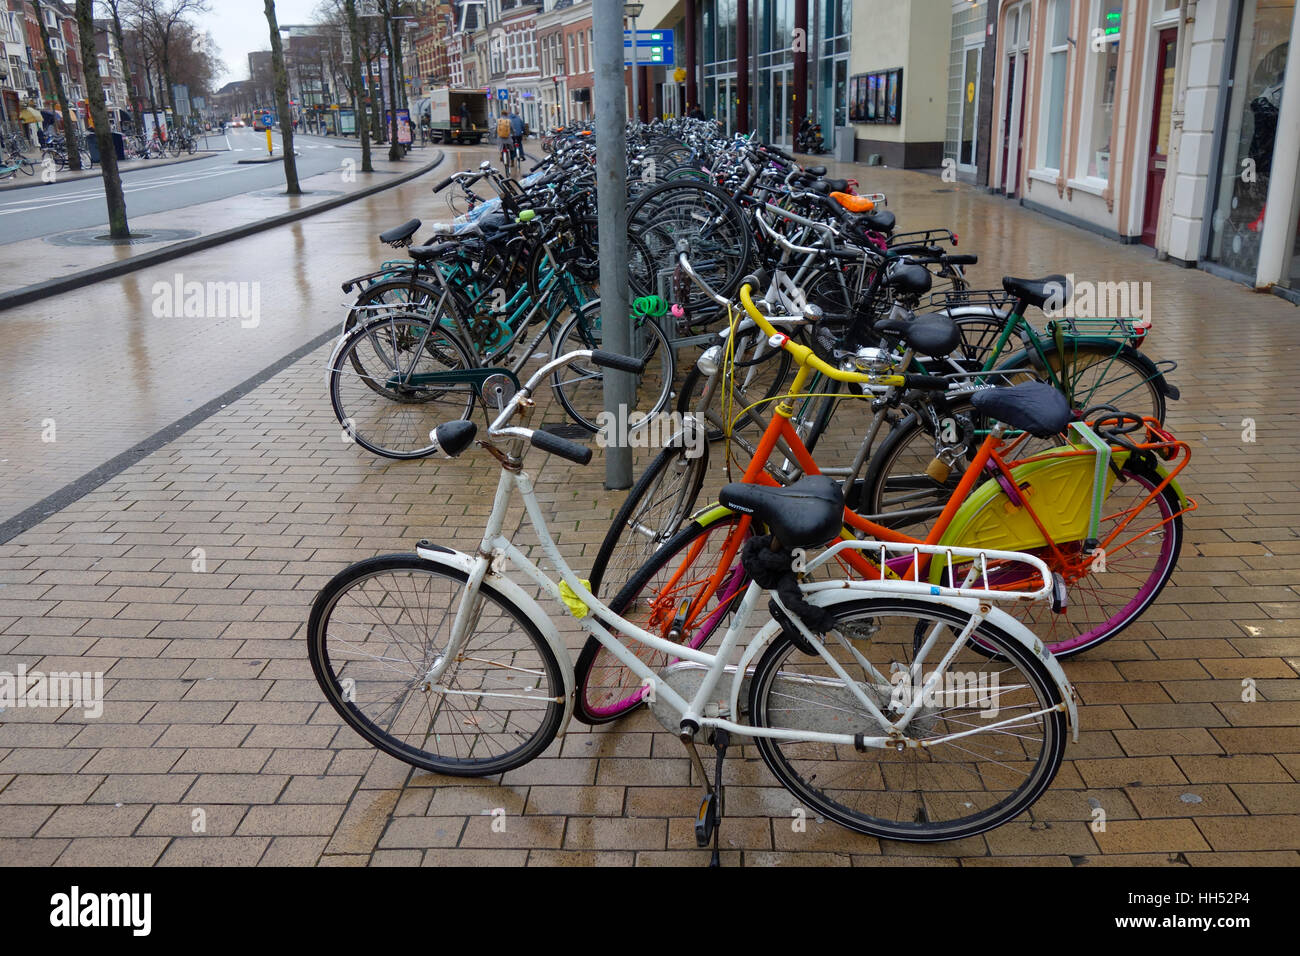 Carport Groningen Fahrradstaender Stock Photos Fahrradstaender Stock Images Alamy